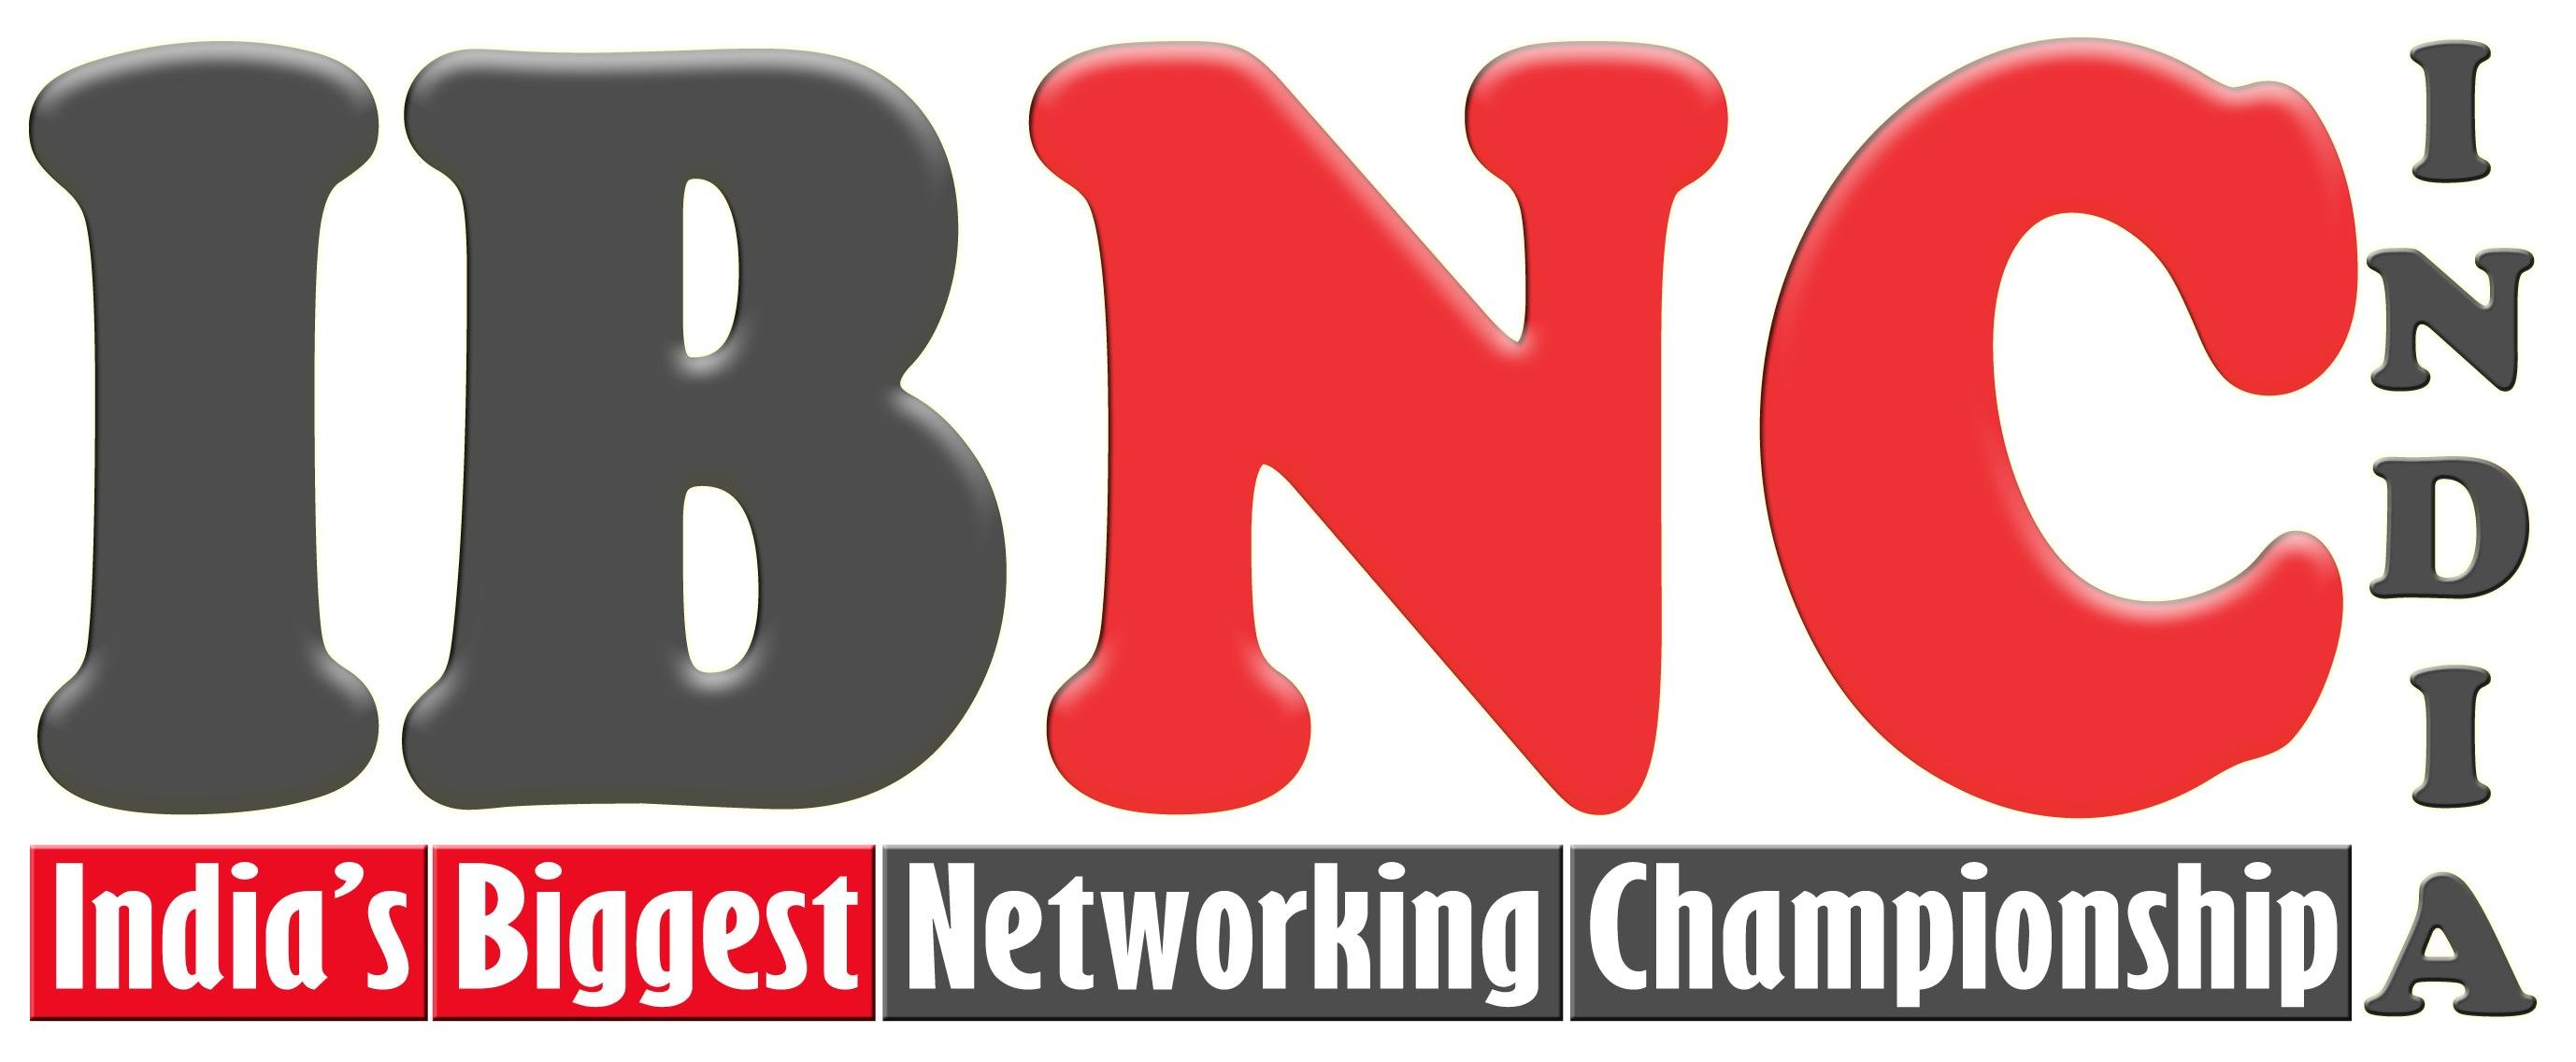 Two Day Cisco Networking Workshop   India's Biggest Networking Championship logo